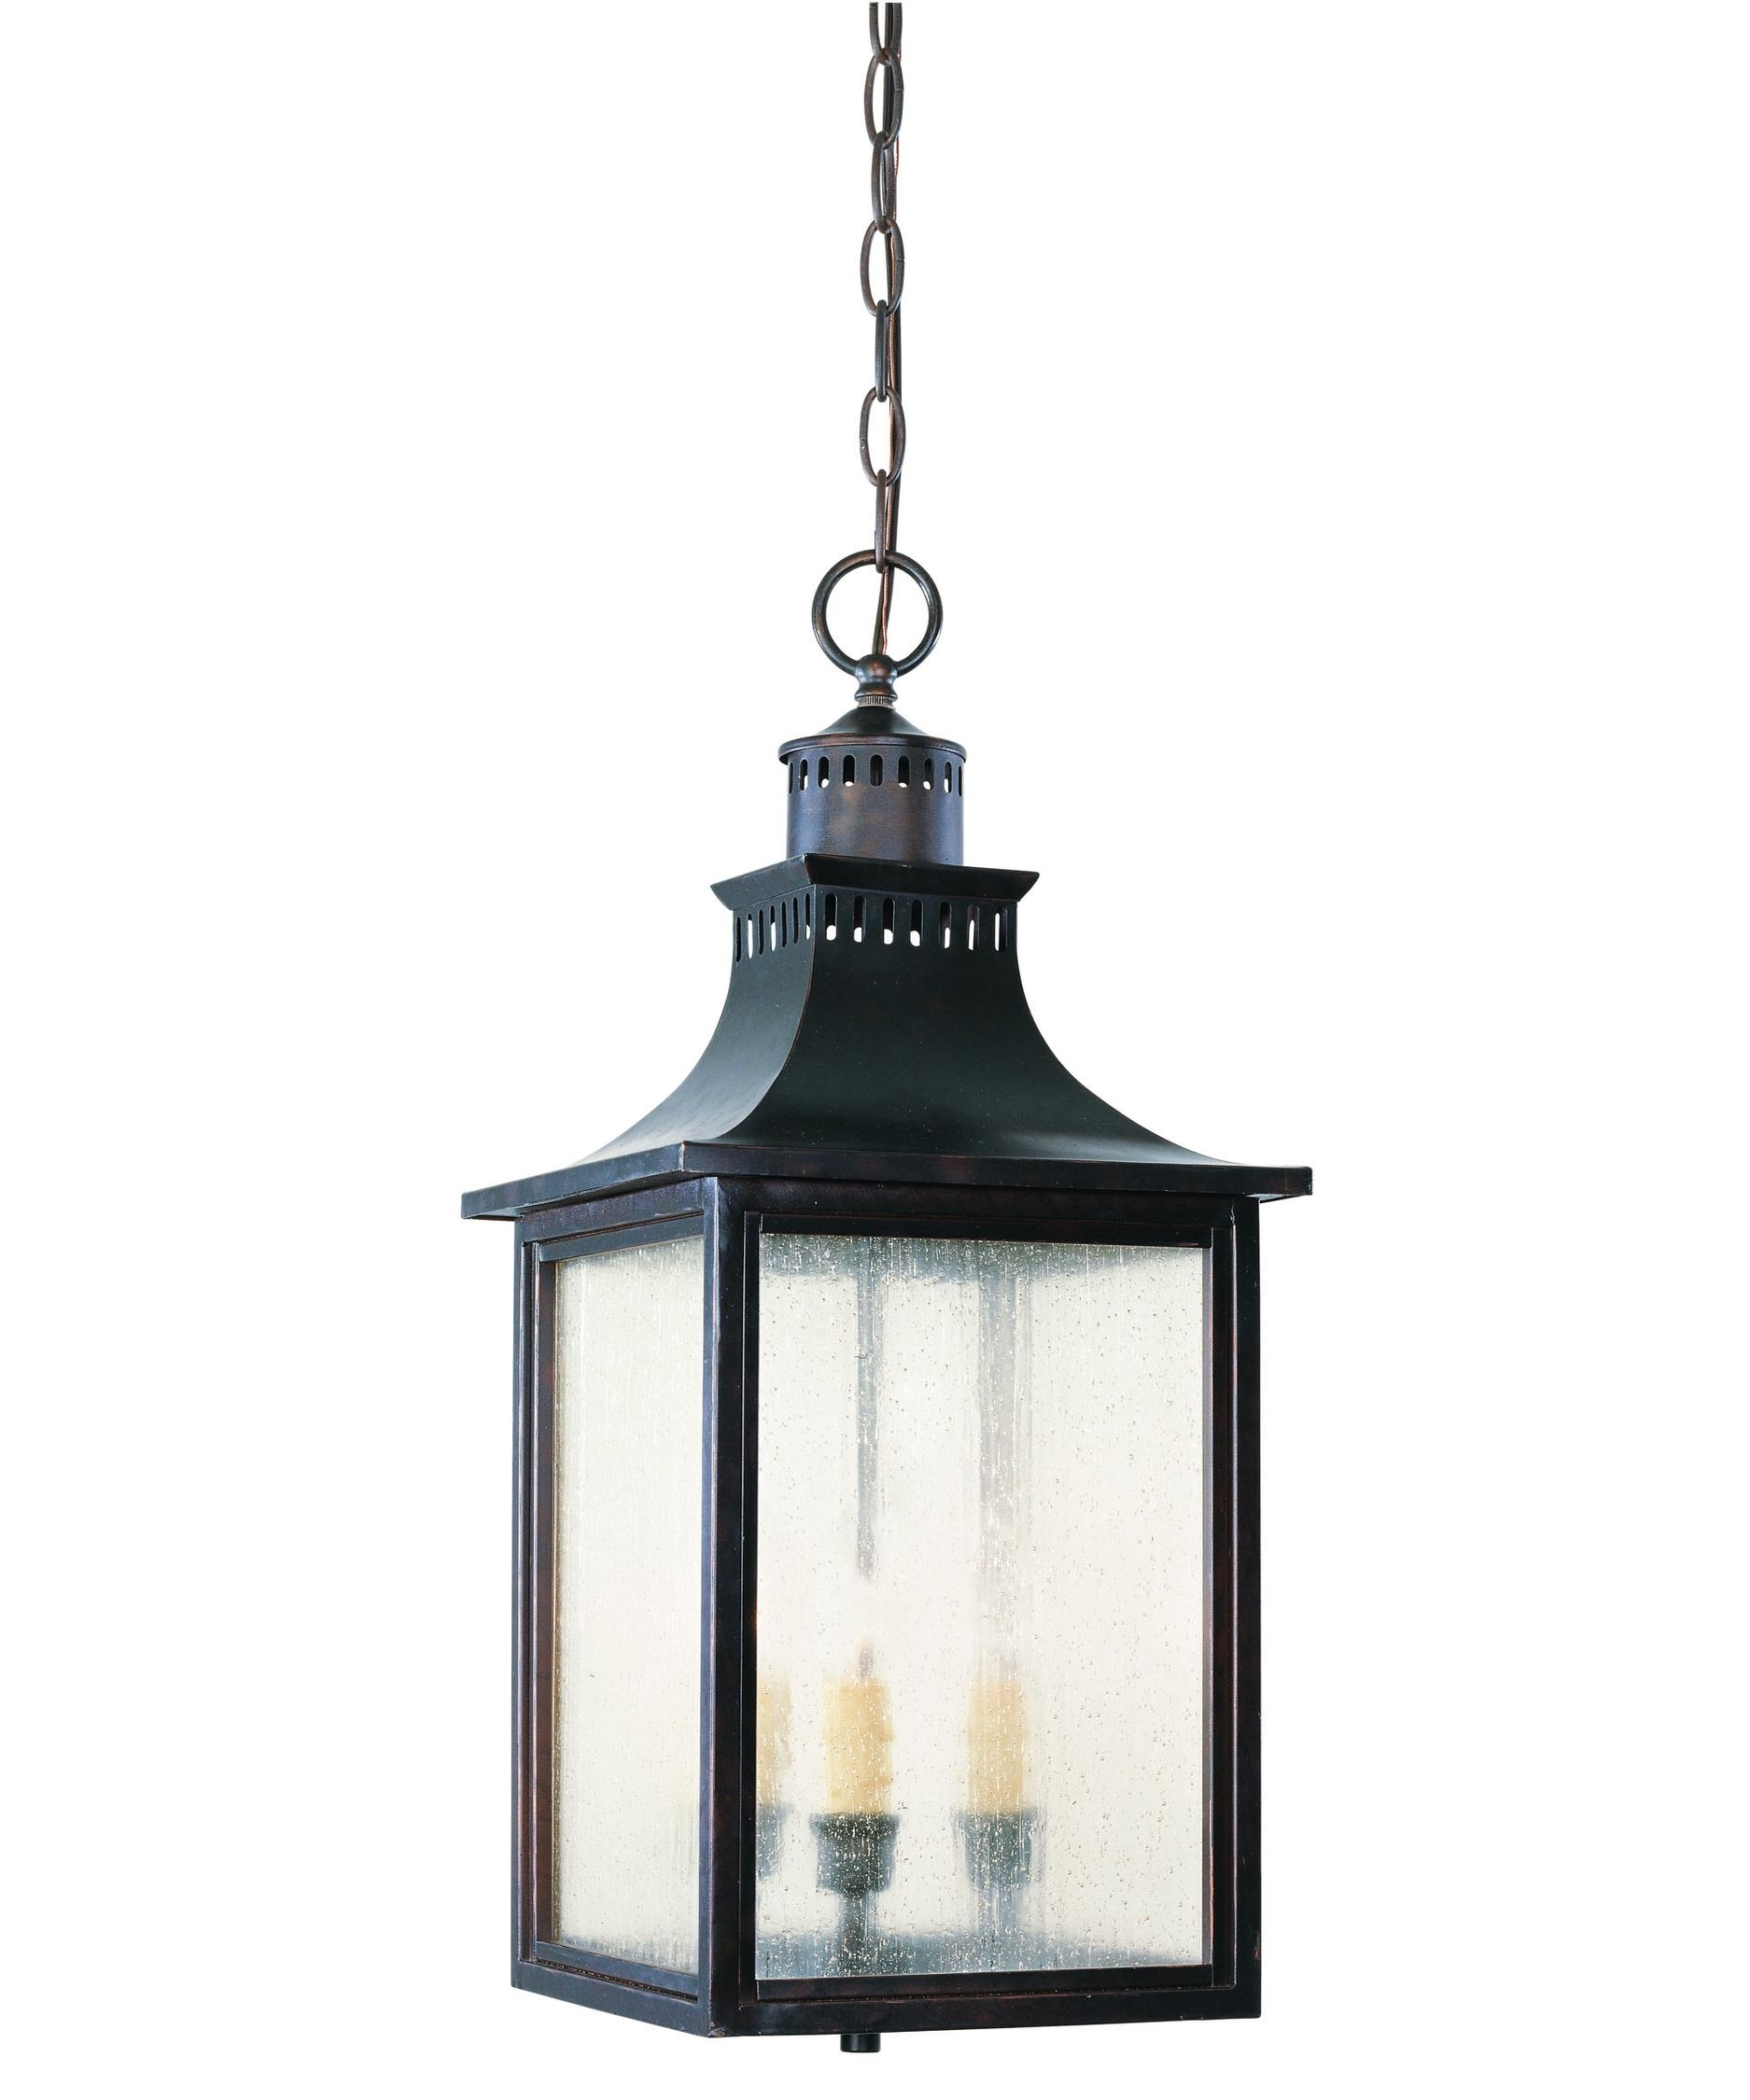 Most Recent Outdoor Electric Lanterns Pertaining To Savoy House 5 256 Monte Grande 10 Inch Wide 3 Light Outdoor Hanging (View 7 of 20)